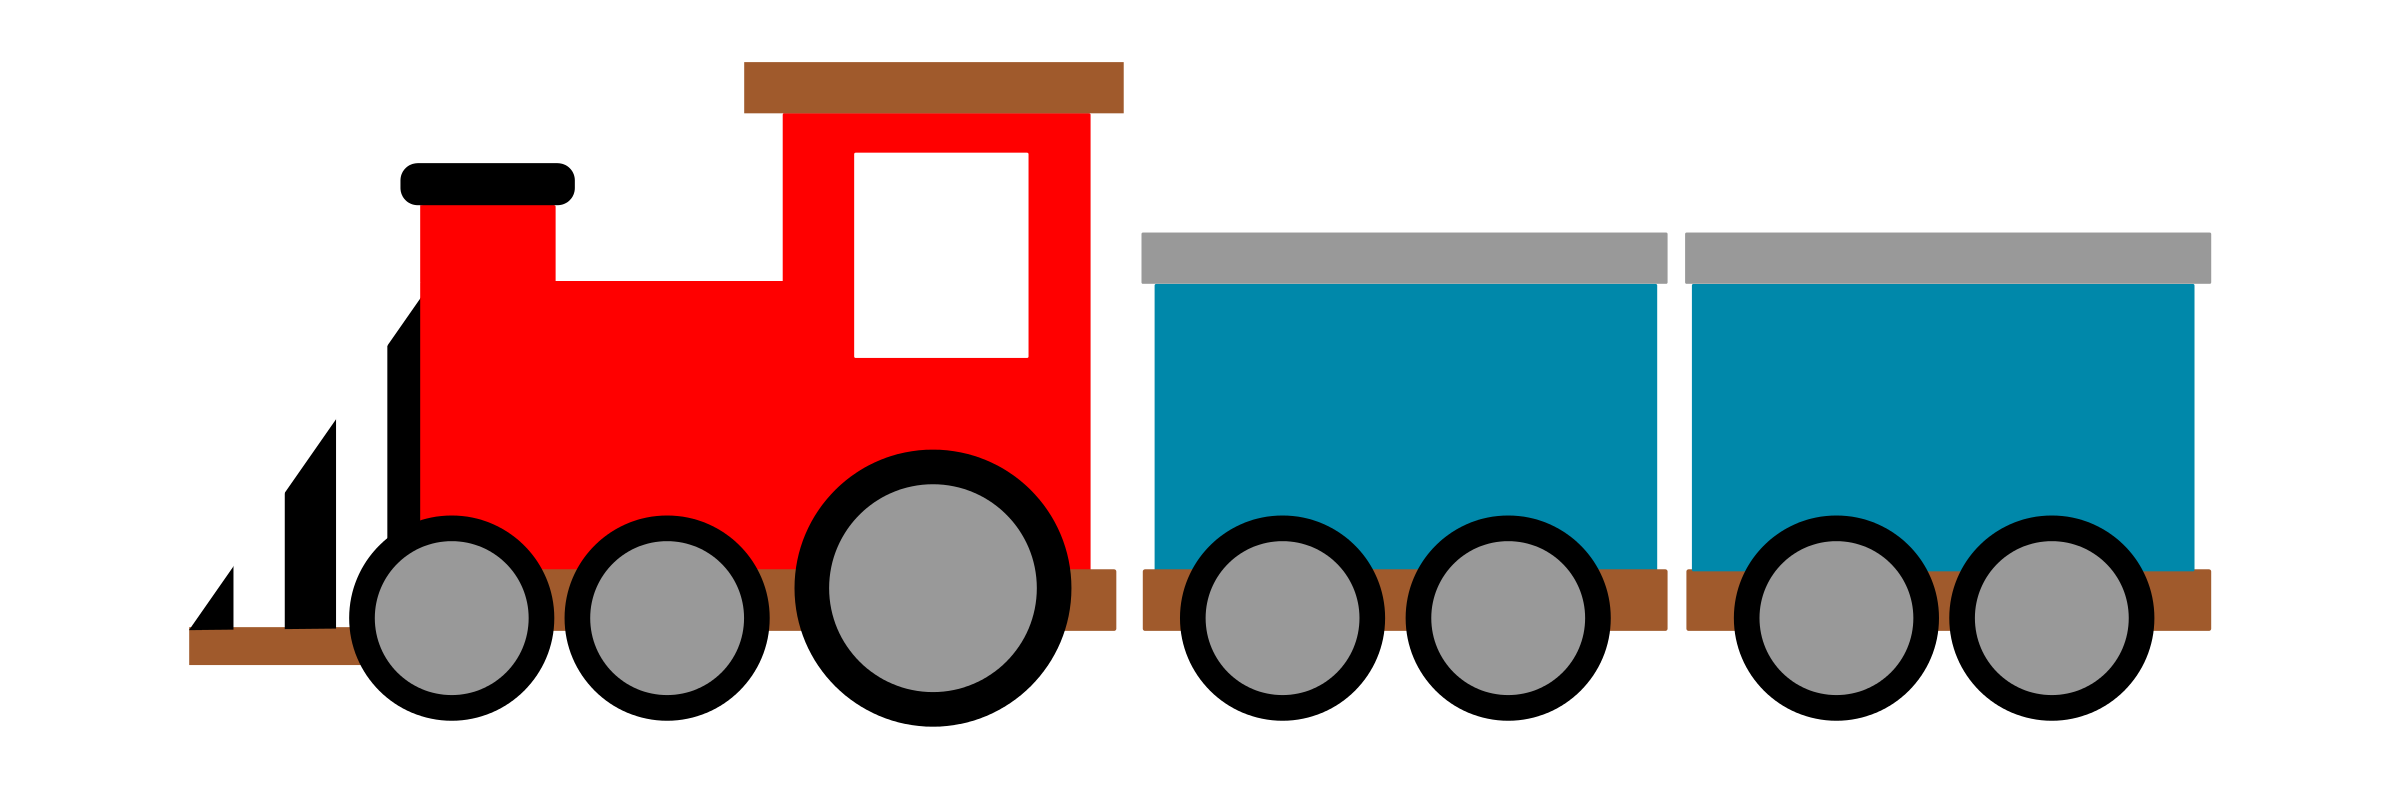 Toy Train Graphics : Toy train images clipart best